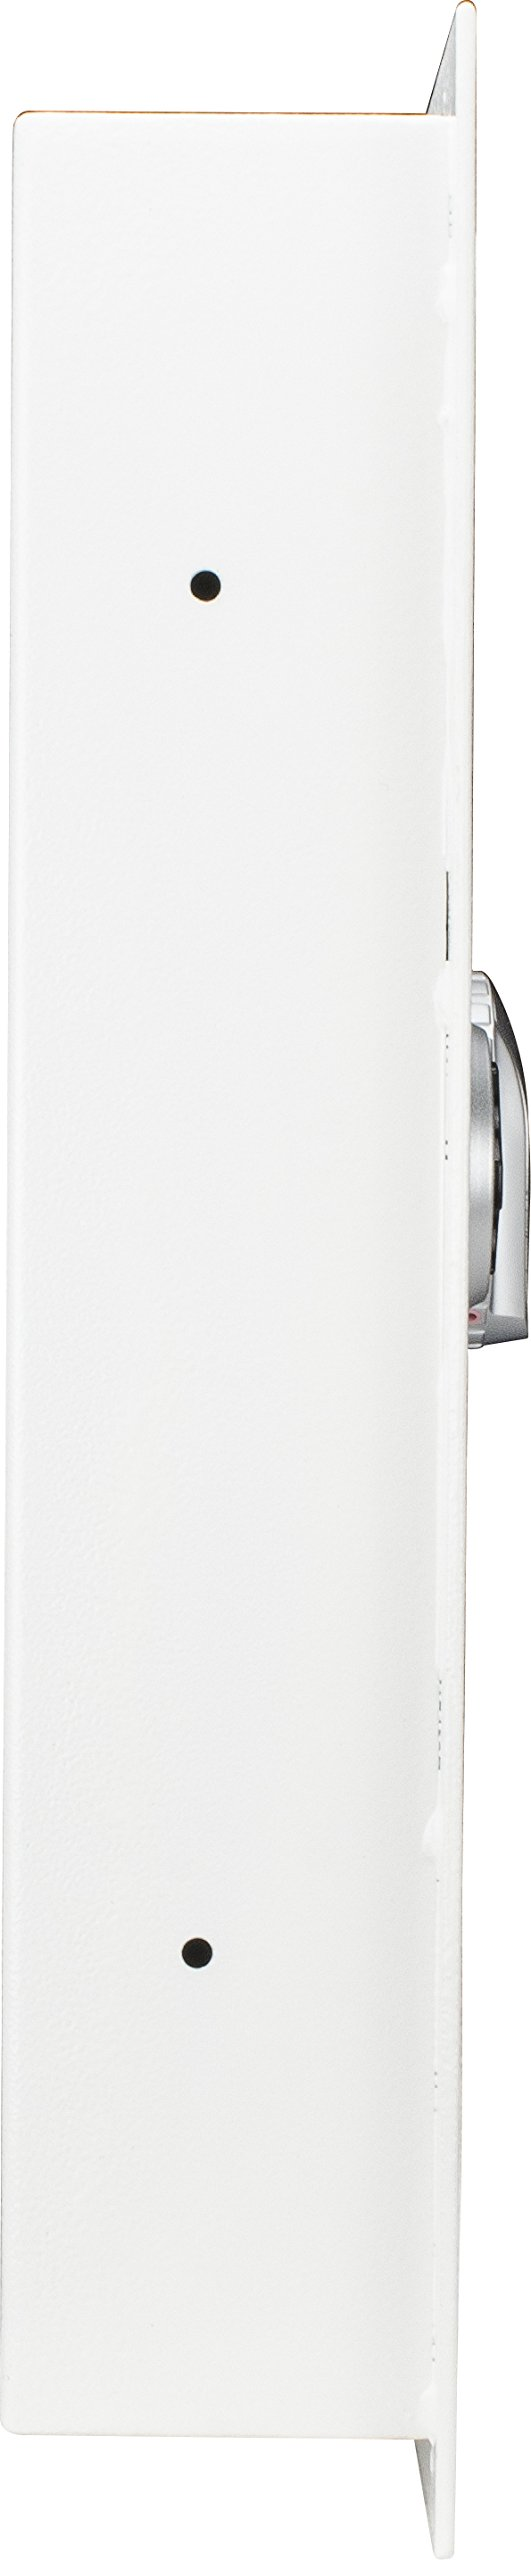 Barska Biometric Wall Safe, White by BARSKA (Image #5)